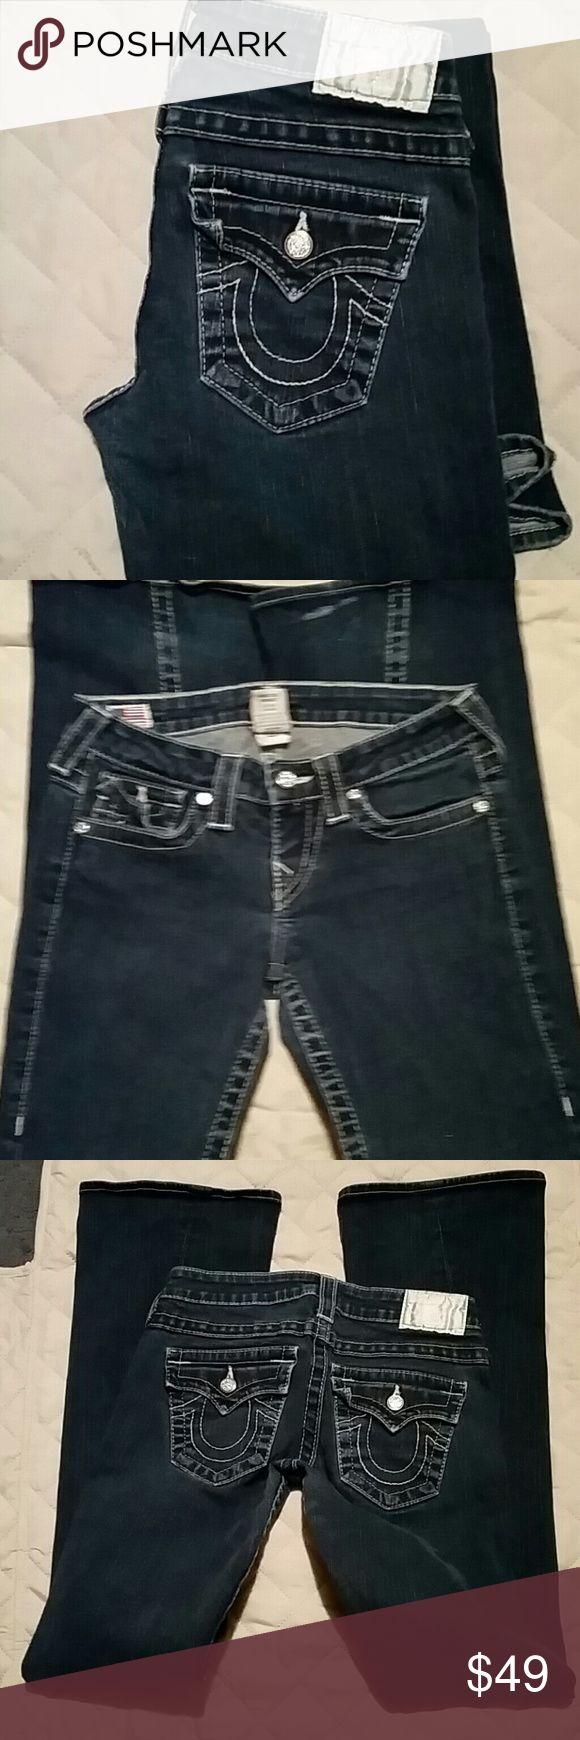 """True Religion jeans size 26 Gray condition, see photos 26"""" waist 40"""" length 32"""" inseam True Religion Jeans"""